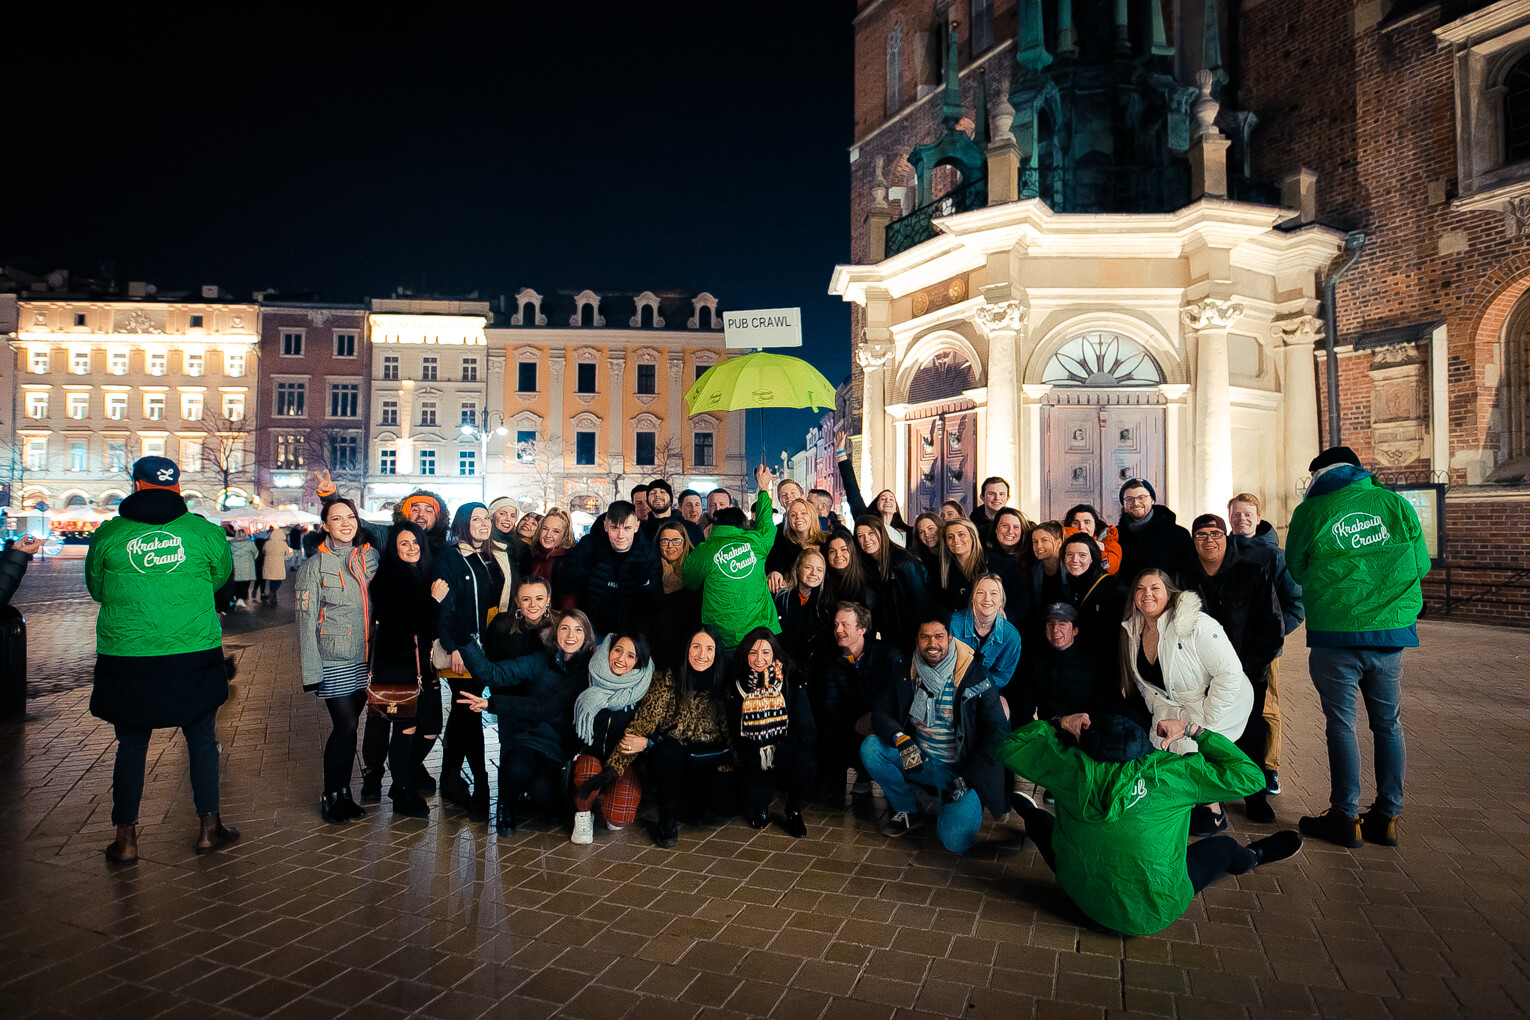 New Year's Eve in Krakow - All you need to Know